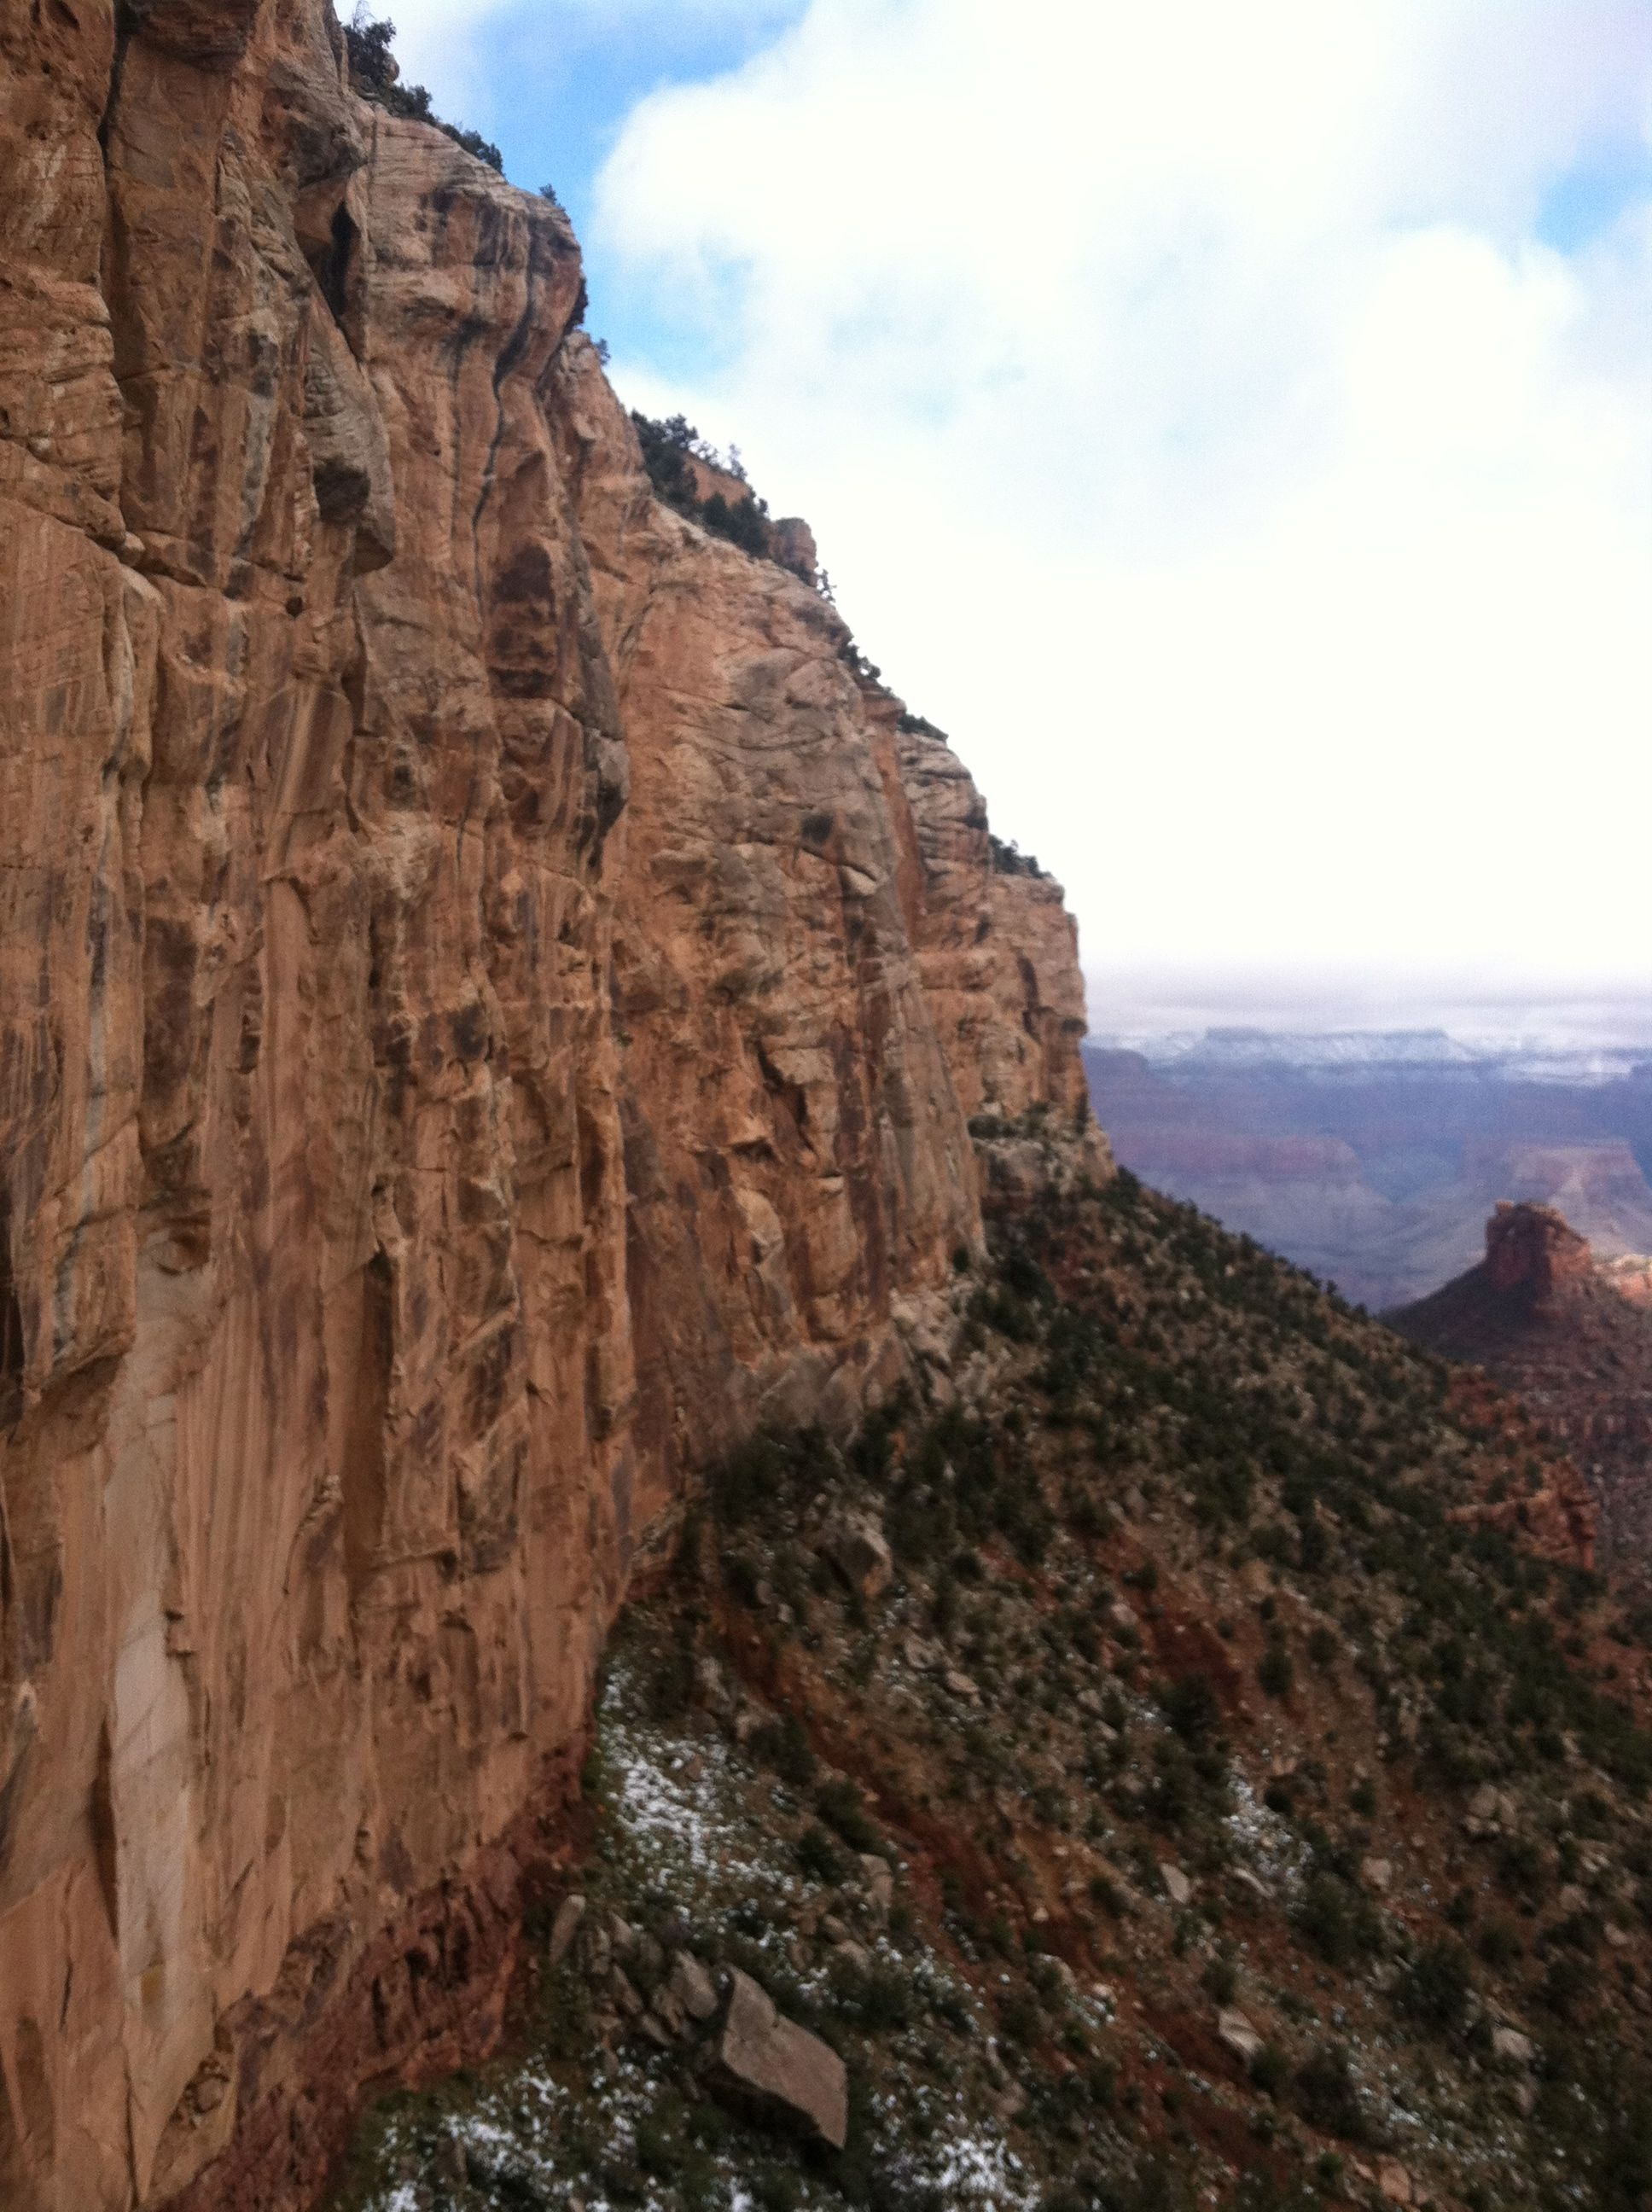 view of side of Grand Canyon from the first mile or so of Bright Angel Trail